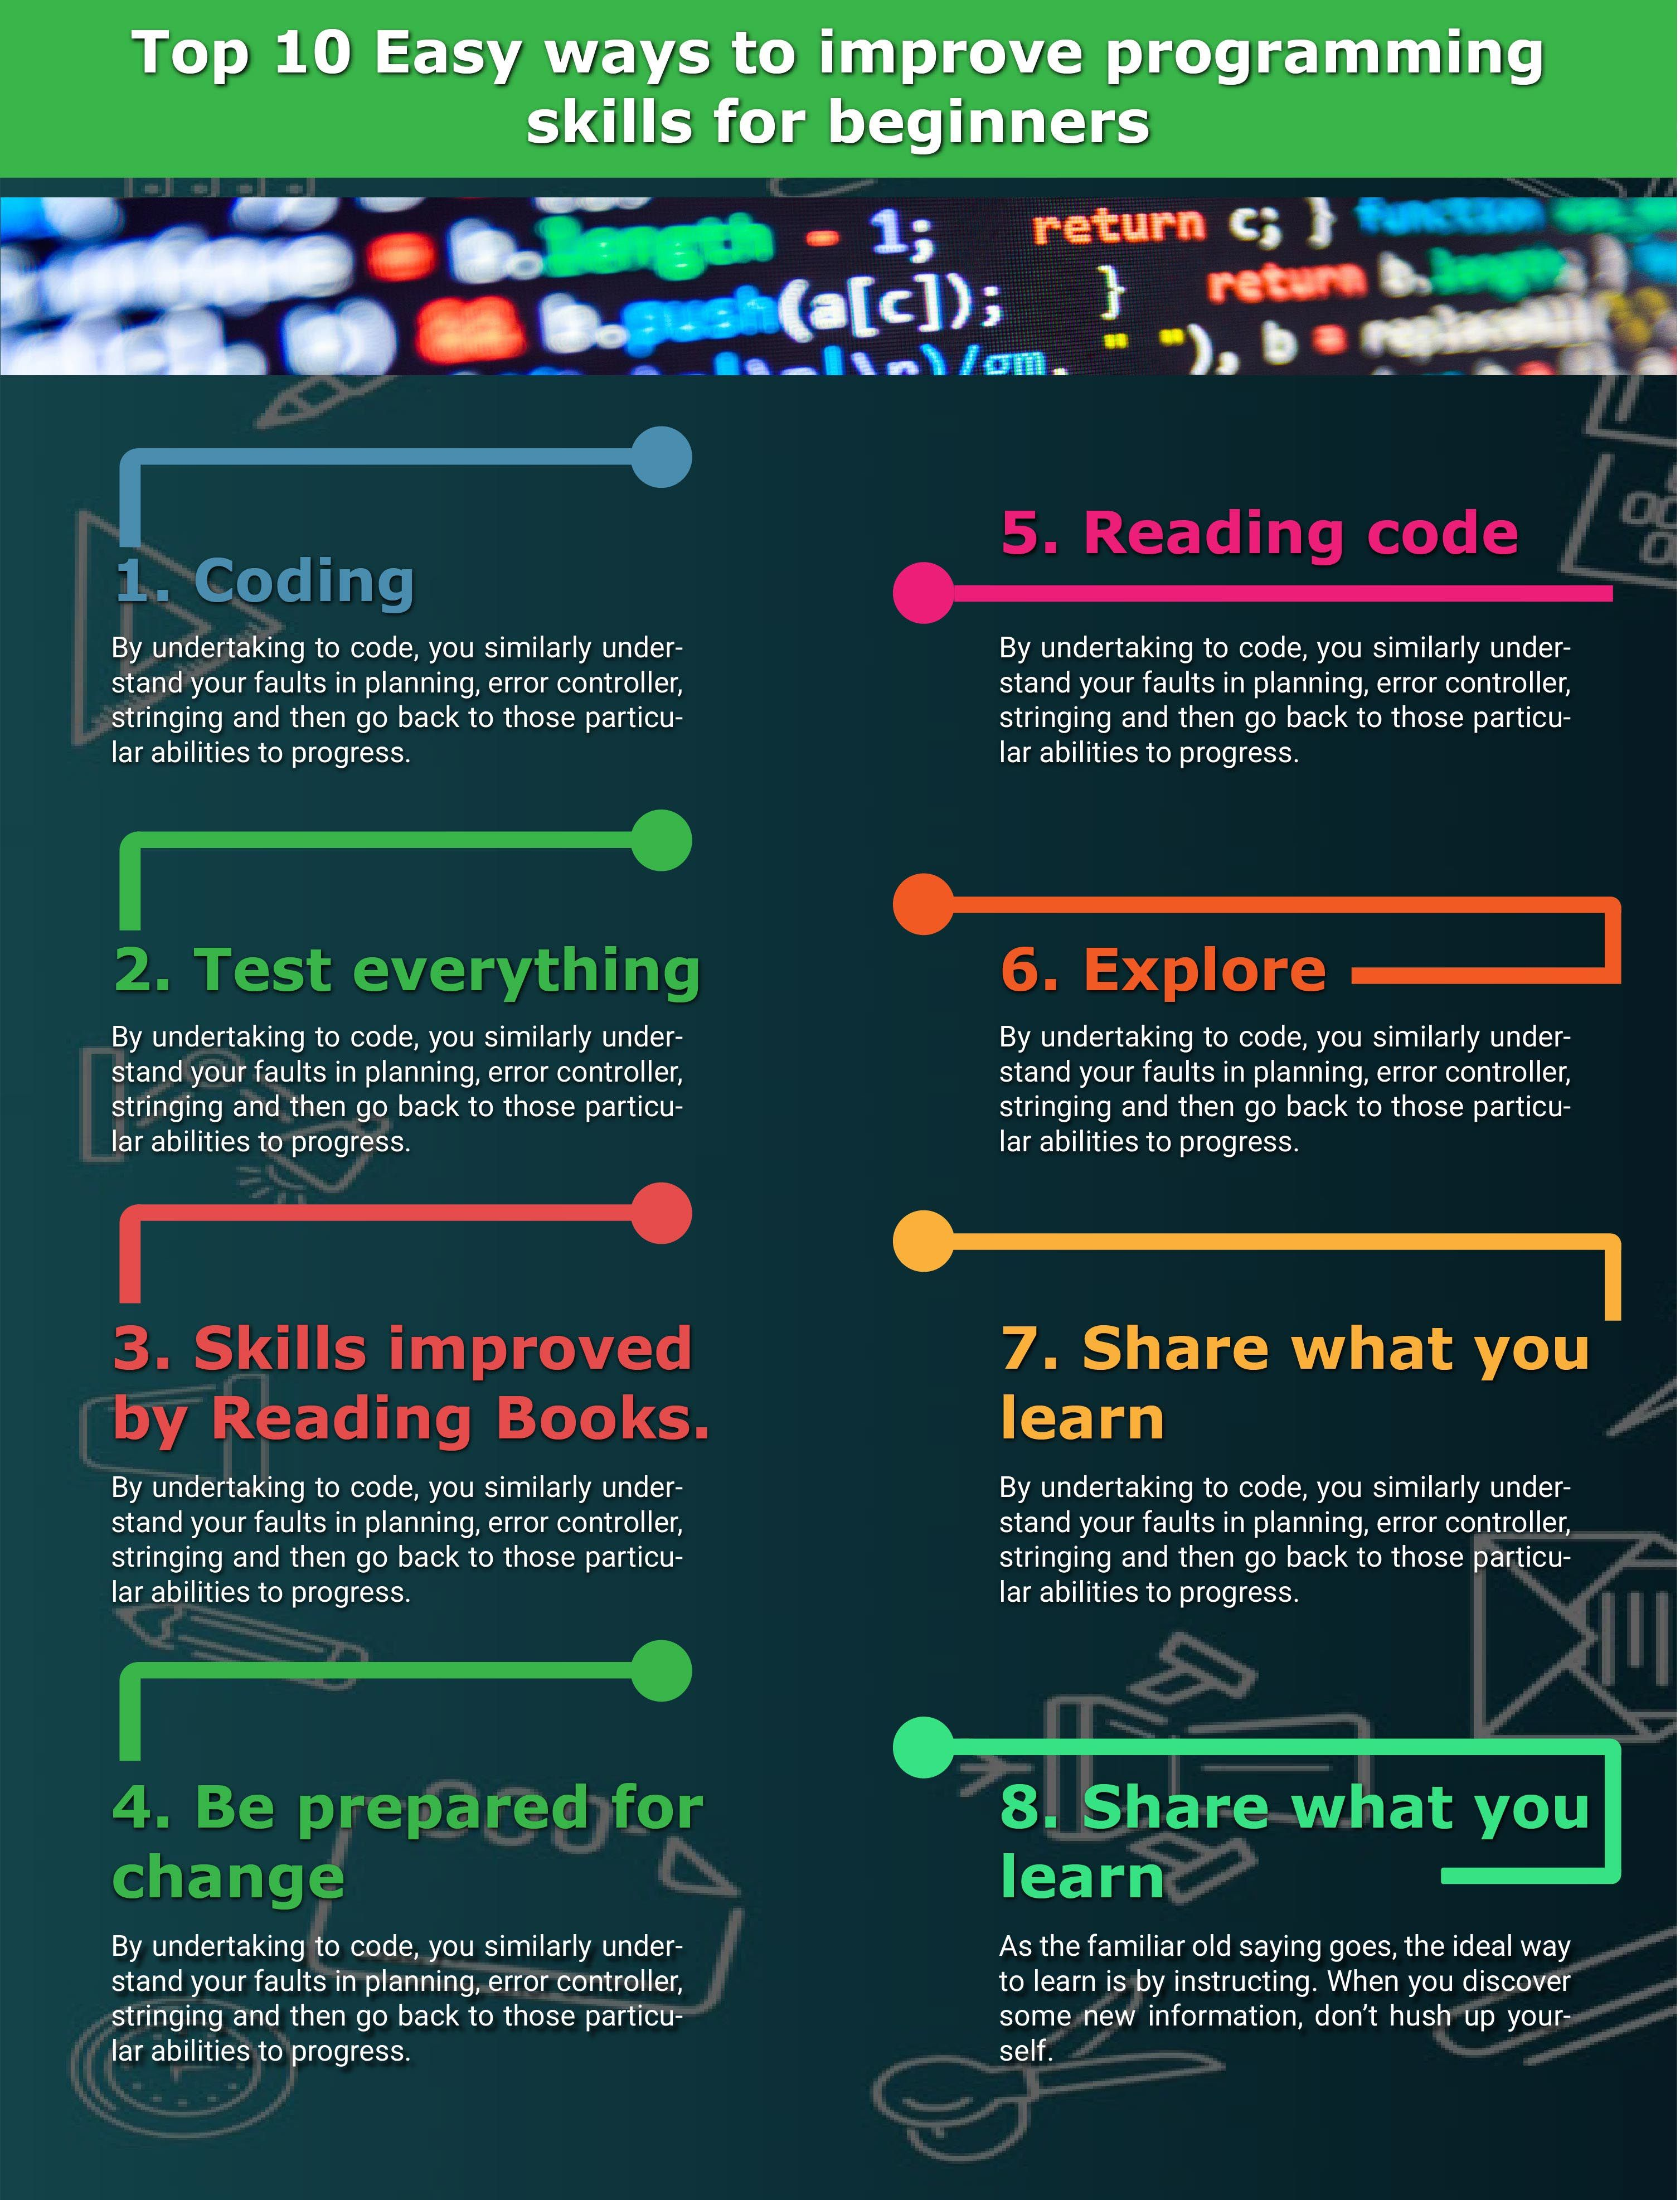 Top 10 Easy Ways To Improve Programming Skills For